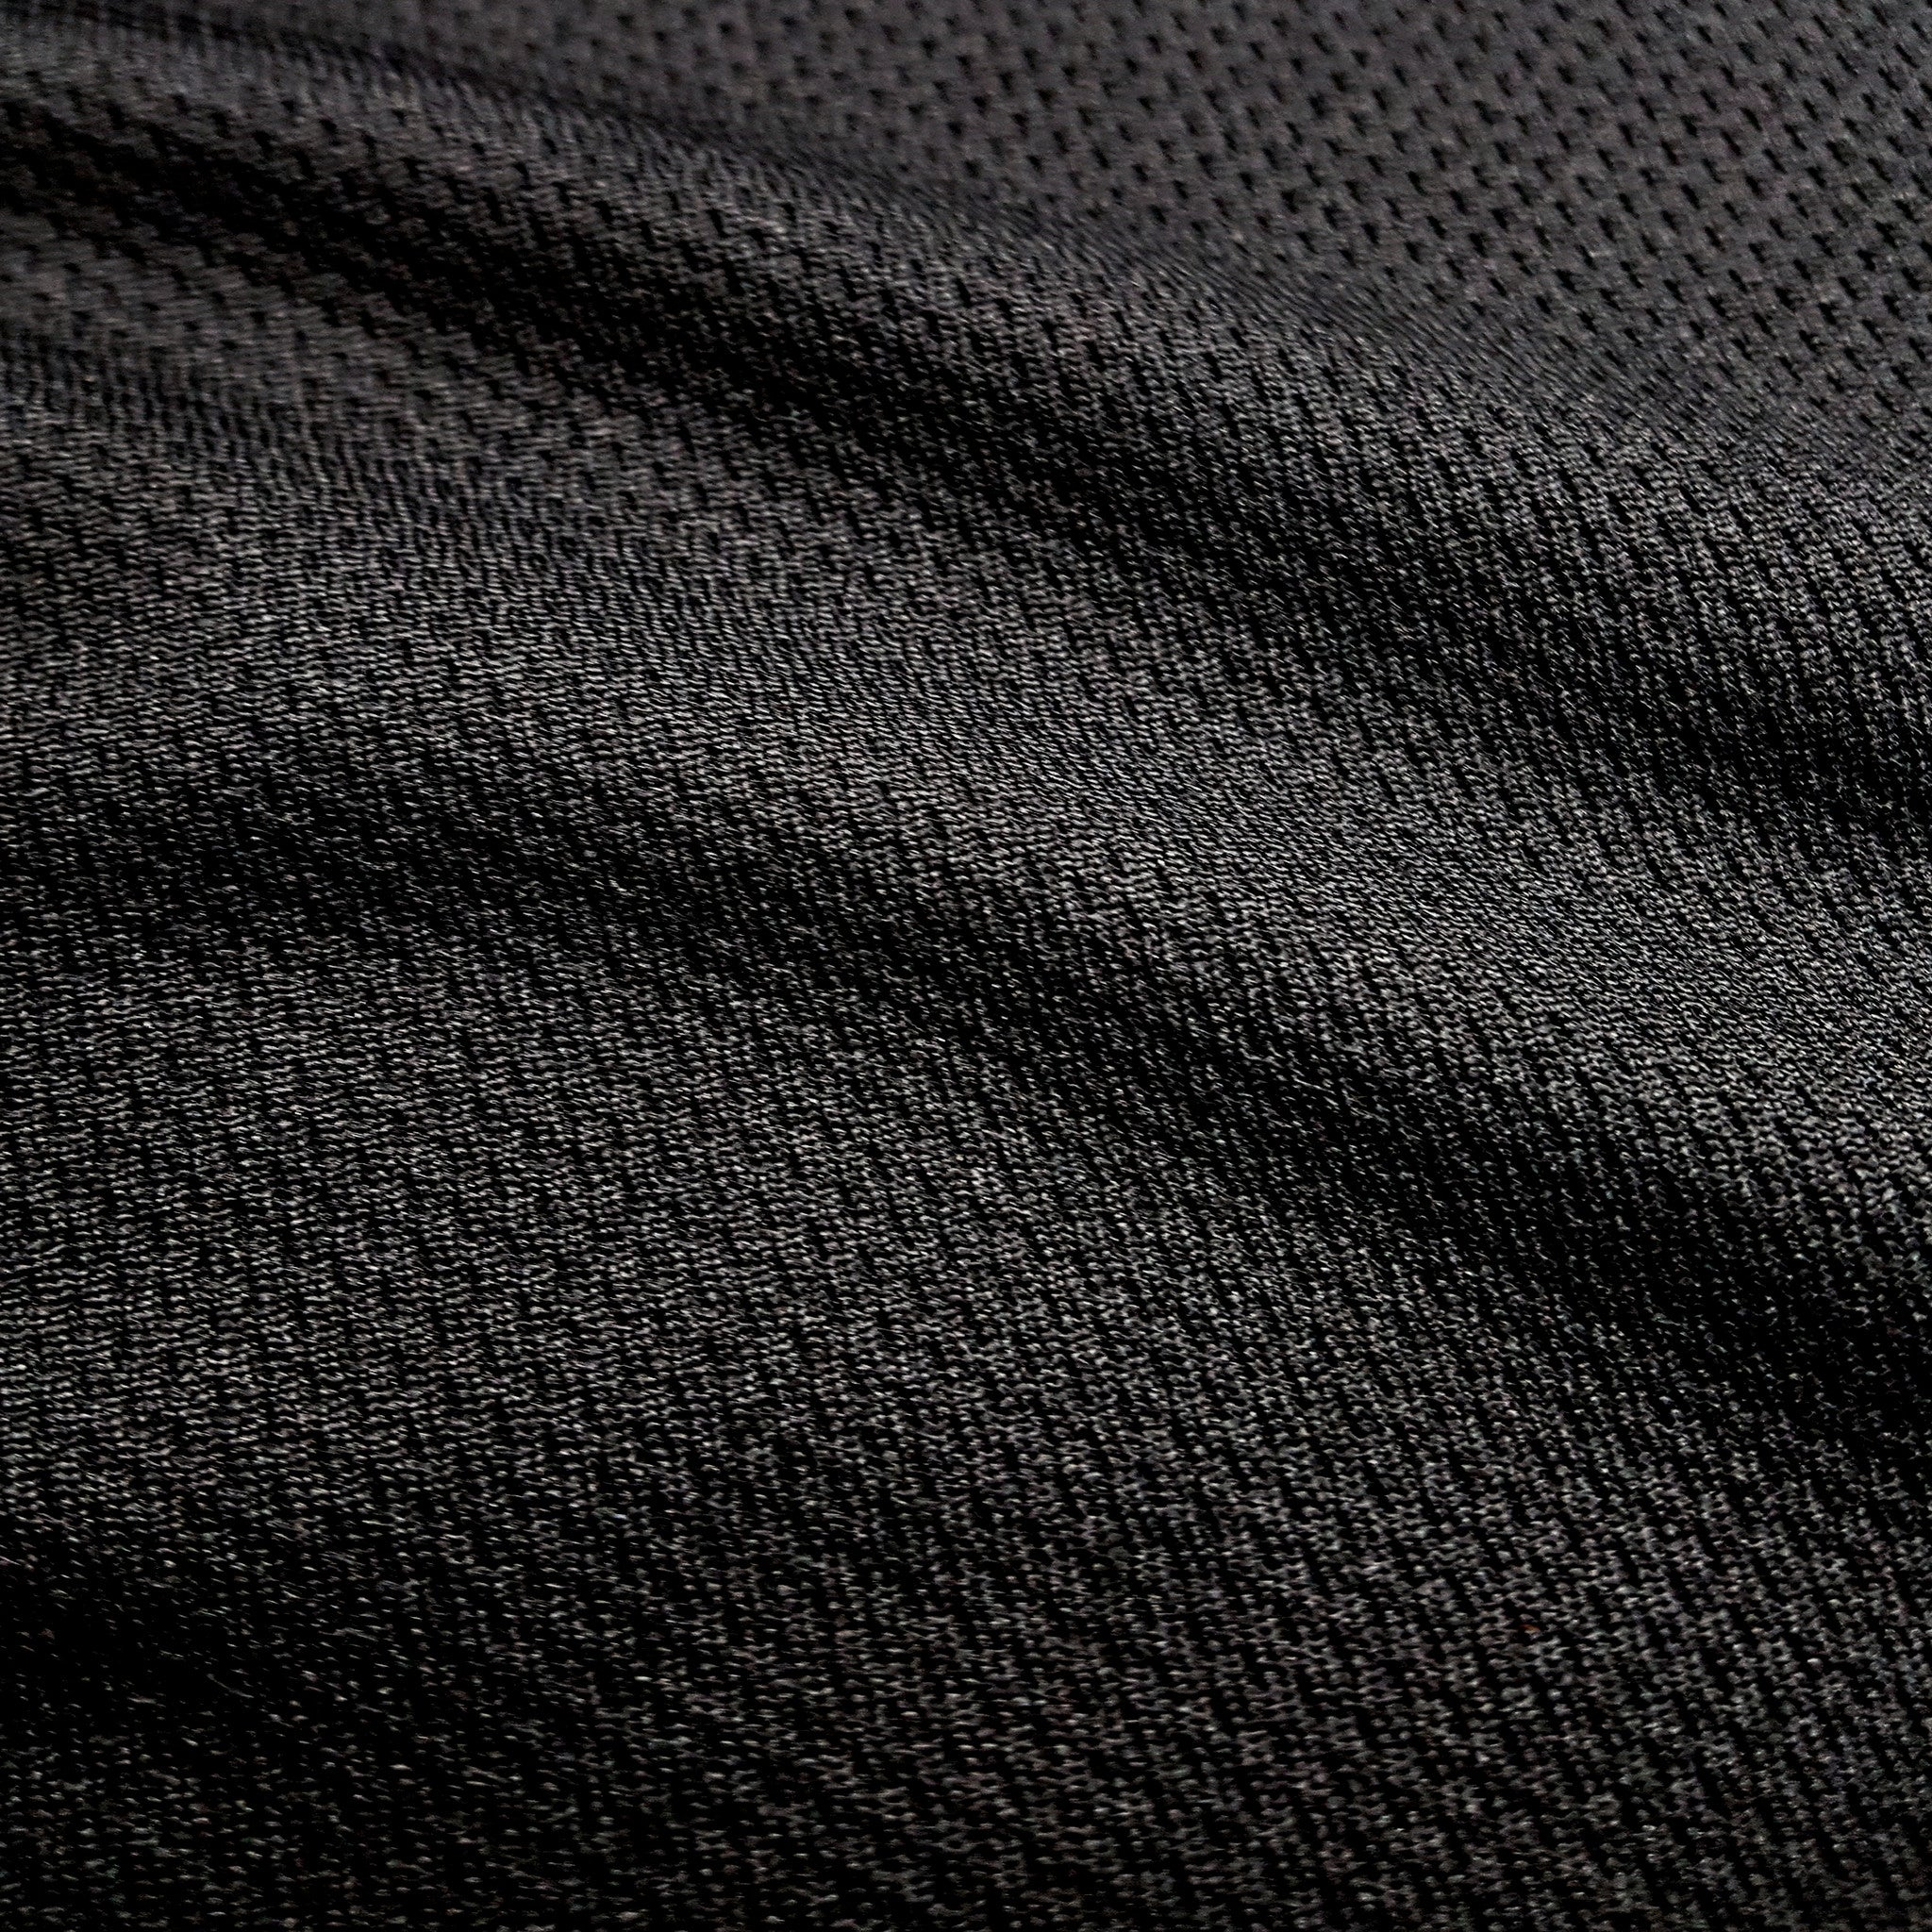 SportyFish Black Series black t-shirt: Yellowfin Tuna(Japanese words) close-up view 3